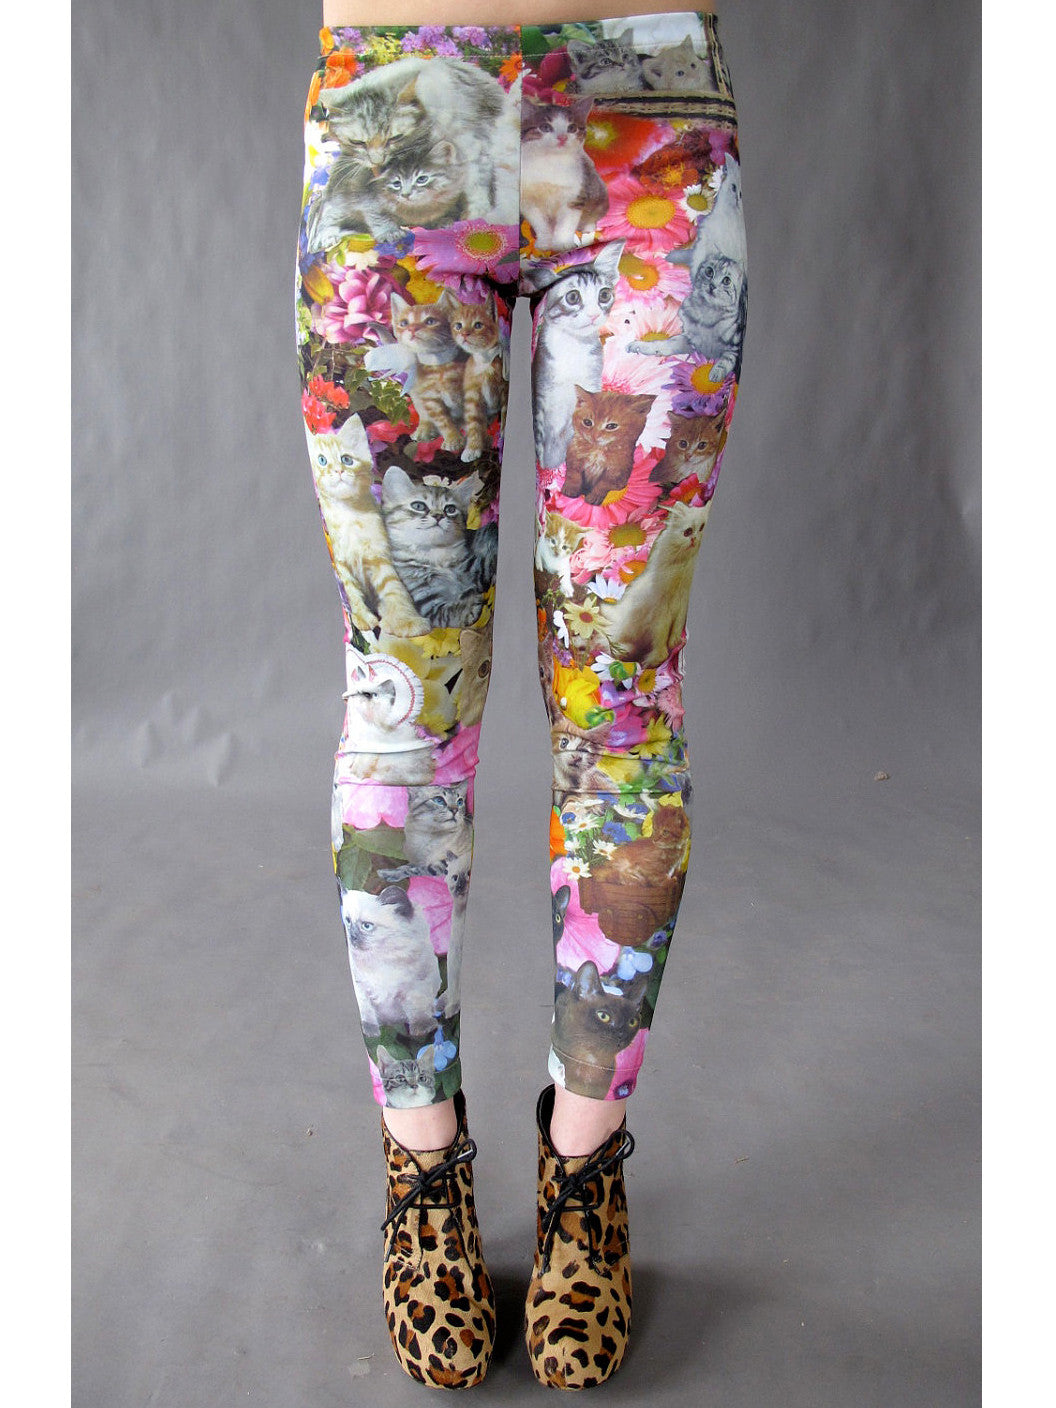 Kitty Garden Party Leggings